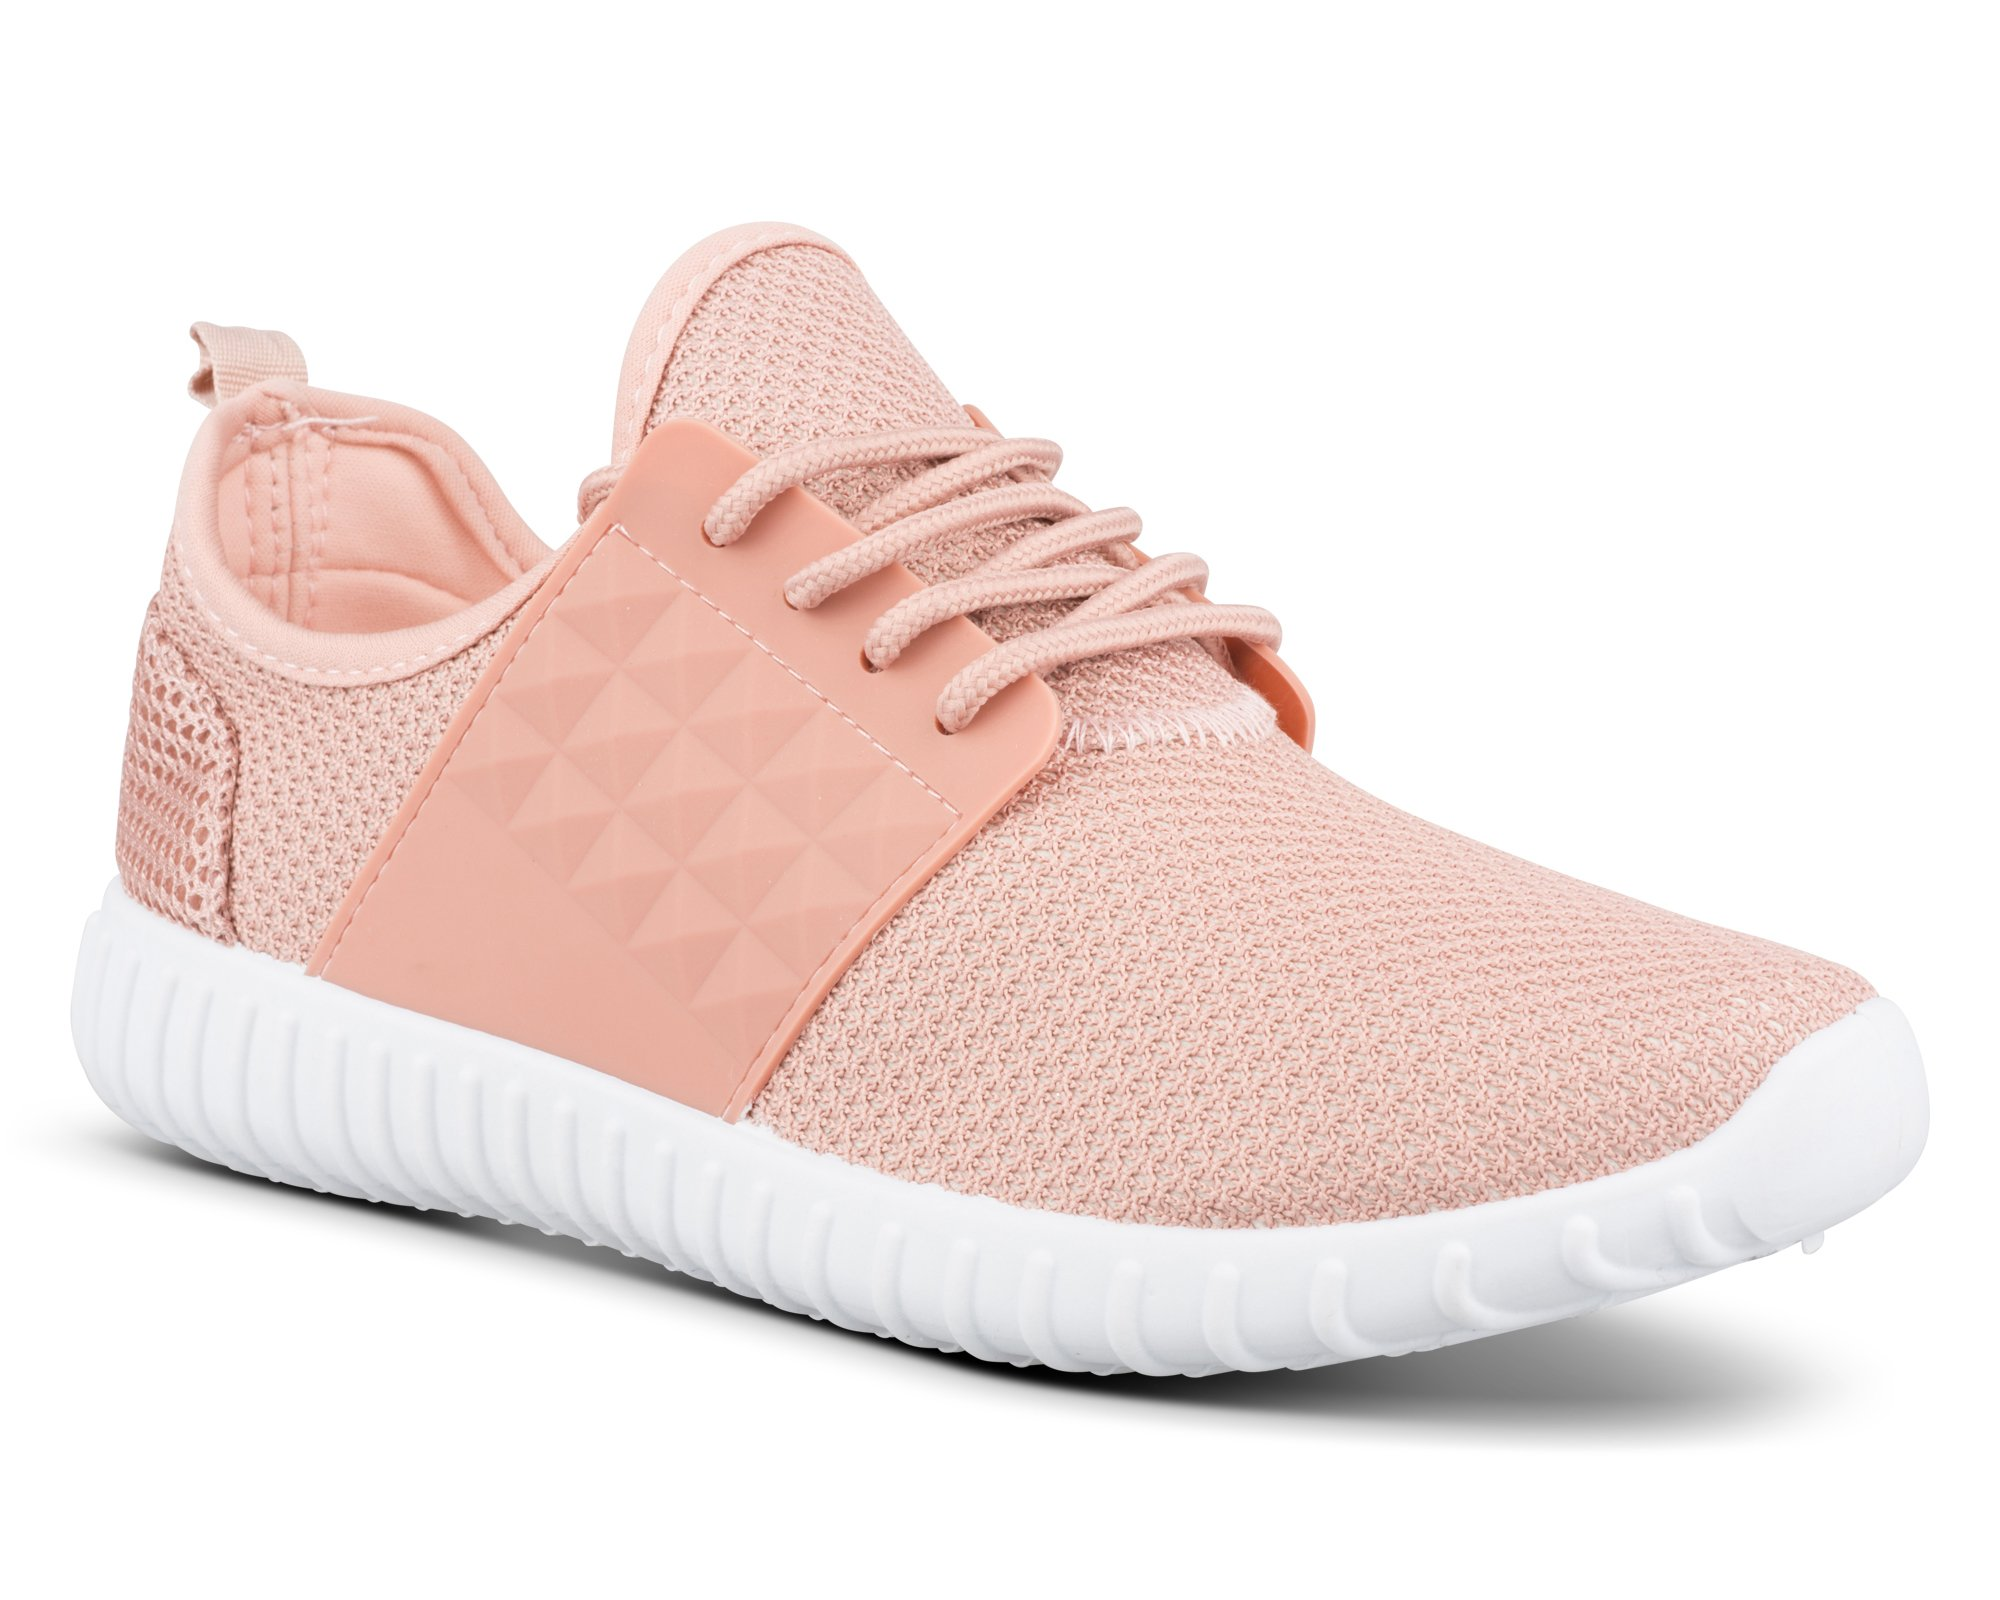 Twisted Womens Electra Lightweight Athletic Fashion Sneaker - ELECTRA02 Blush, Size 8.5 by Twisted